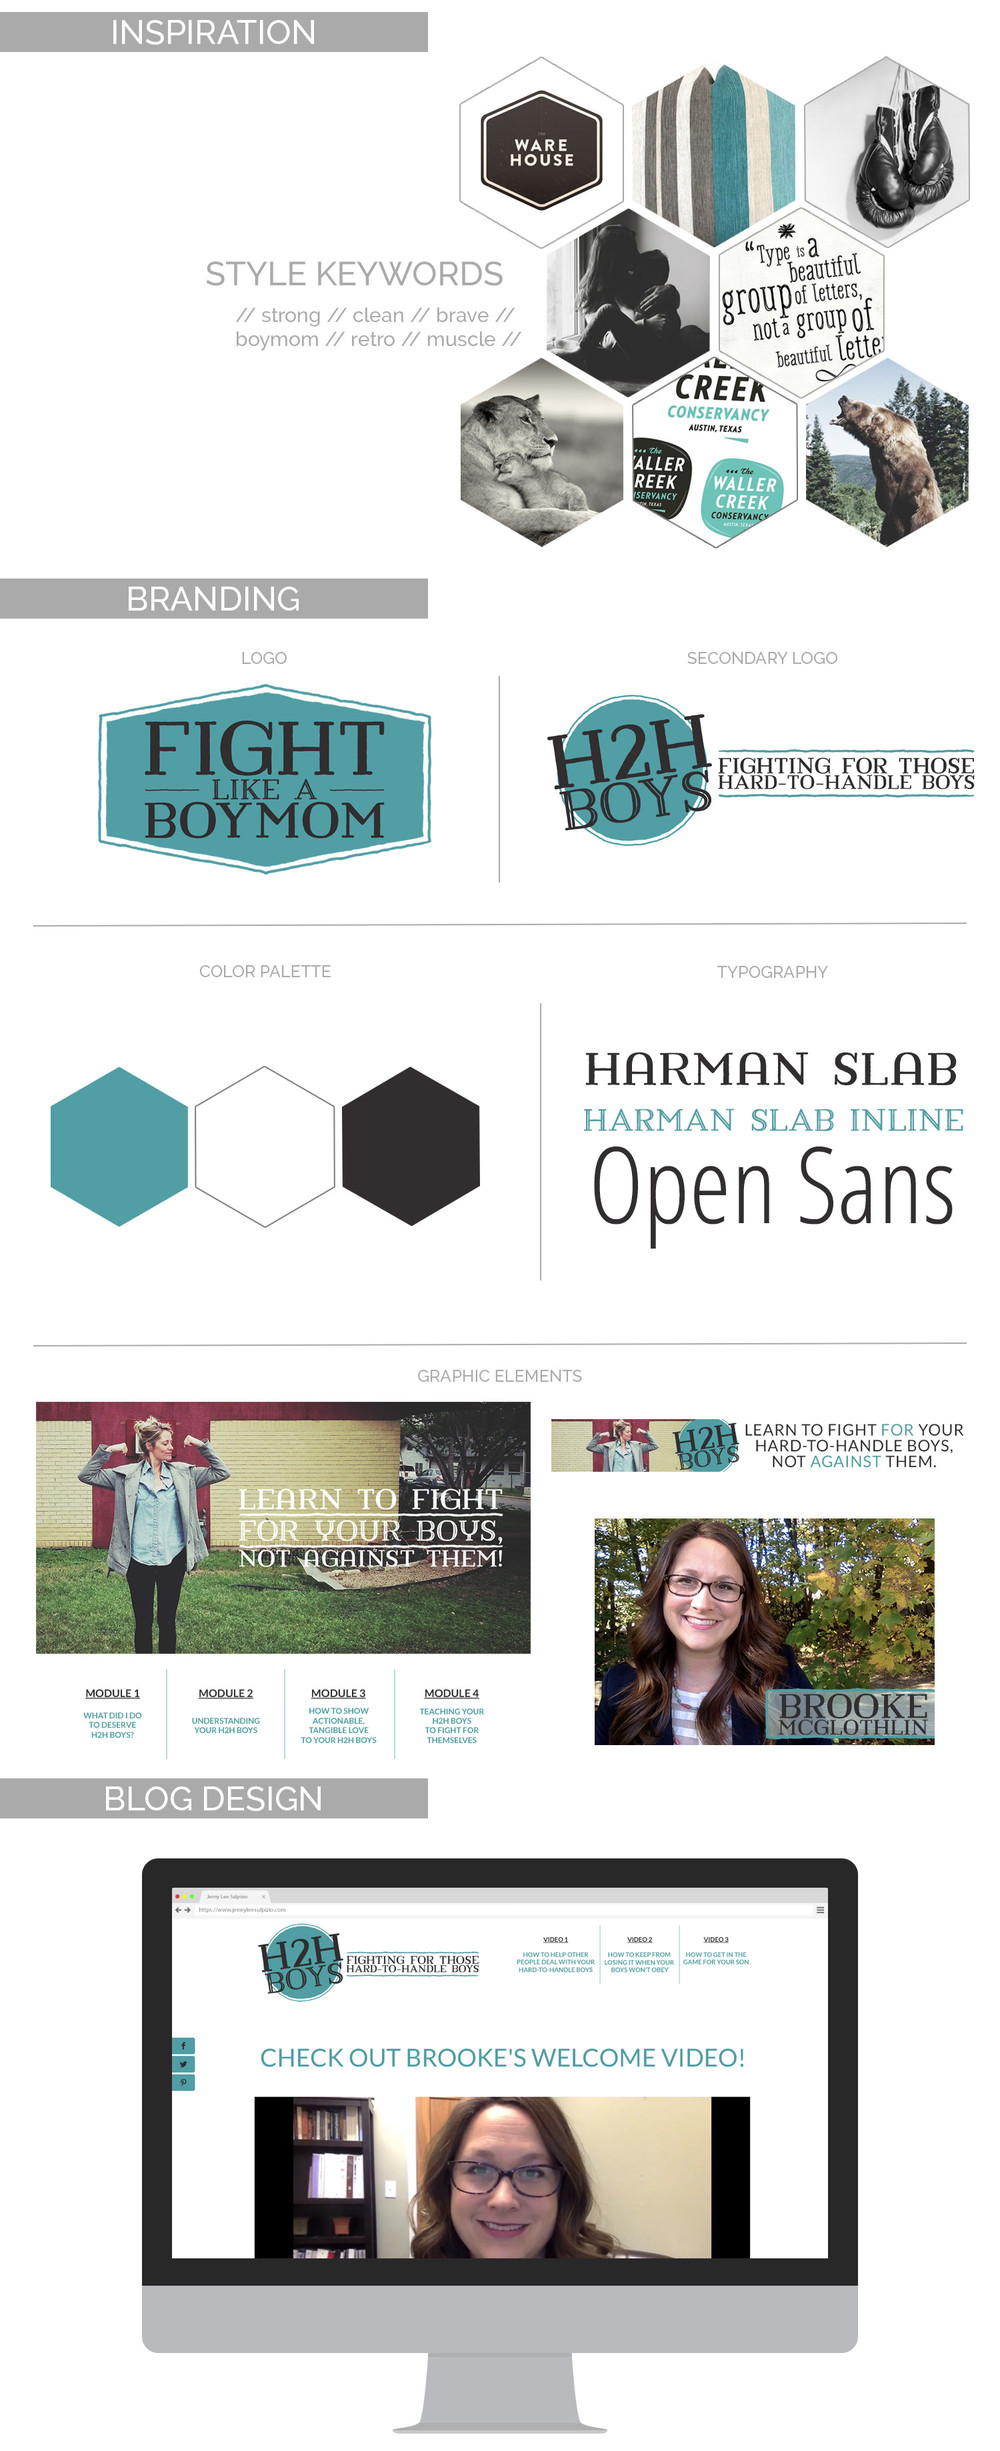 Fight Like a BoyMom Program | Design and Development by Finding Eden Media